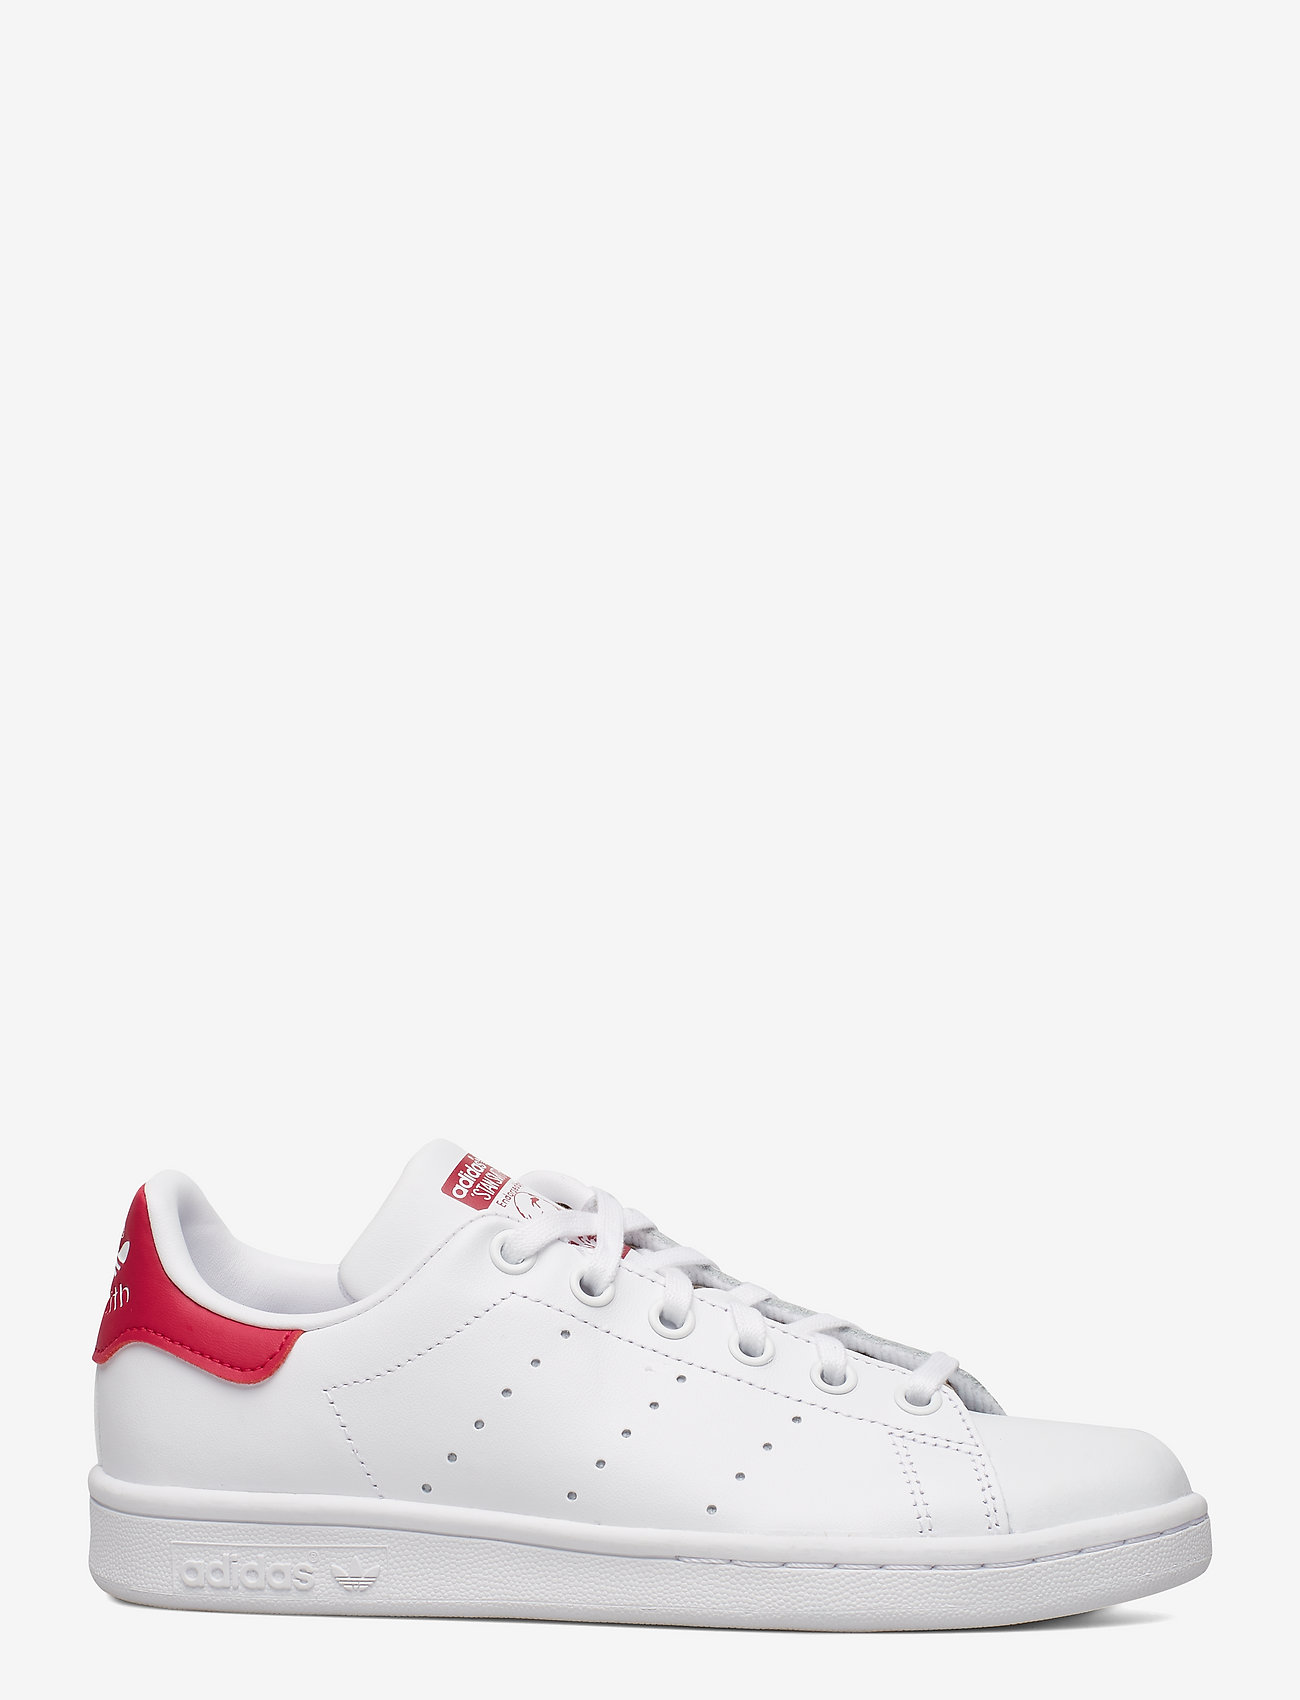 adidas Originals - STAN SMITH J - low tops - ftwwht/ftwwht/bopink - 1